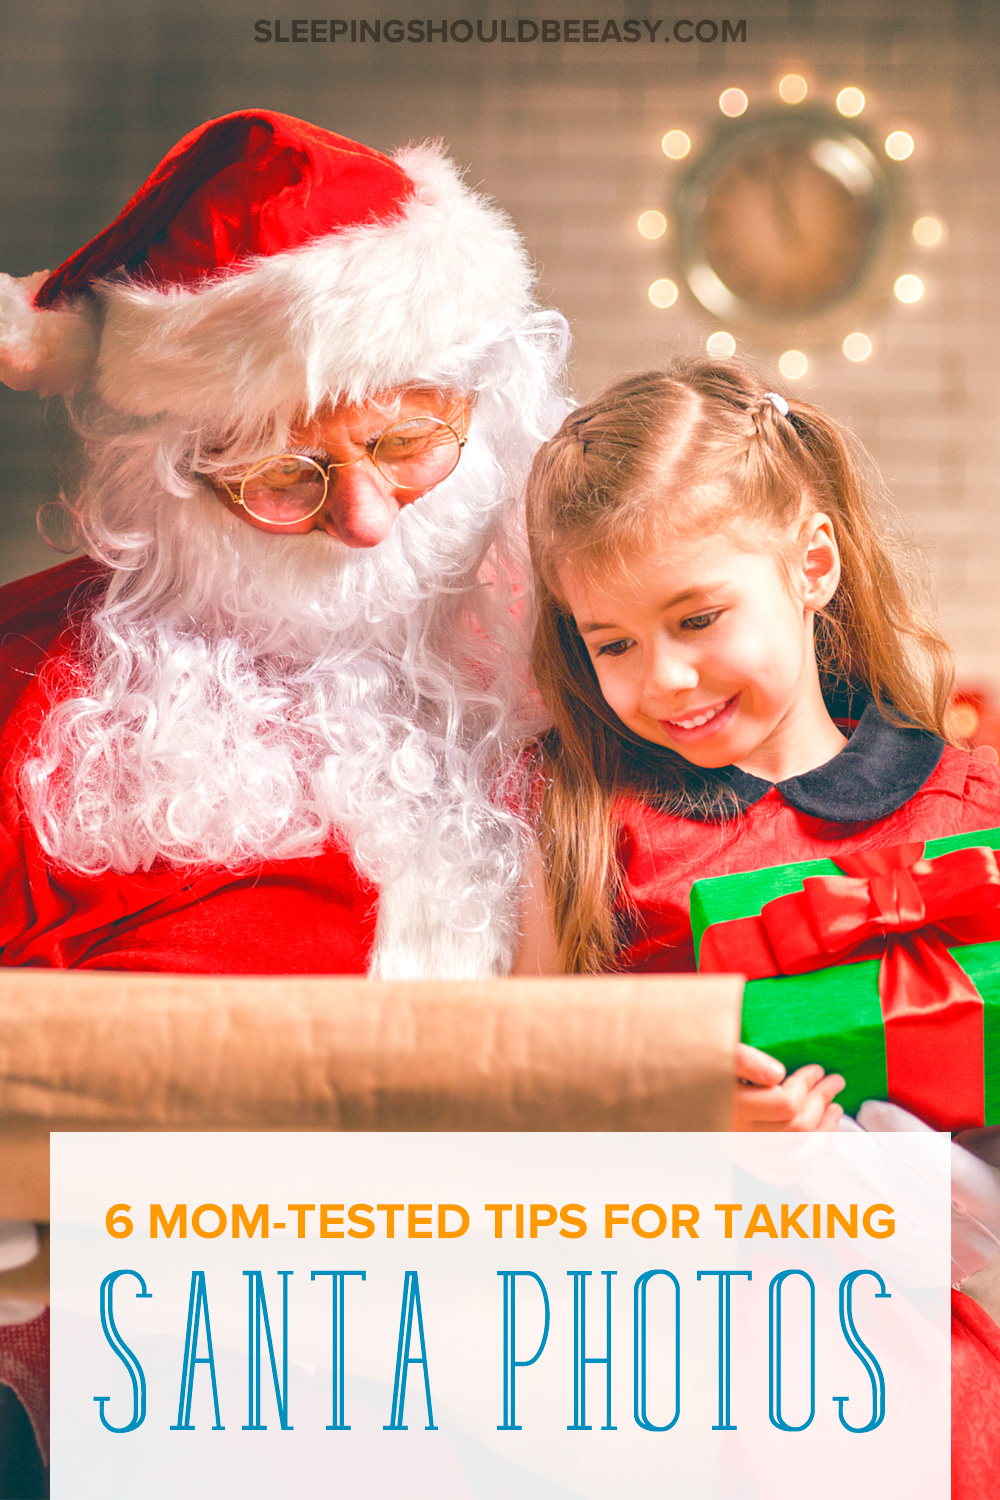 Taking Santa photos is a beloved tradition among many families. Learn the best mom-tested tips on how to make the experience go smoothly.